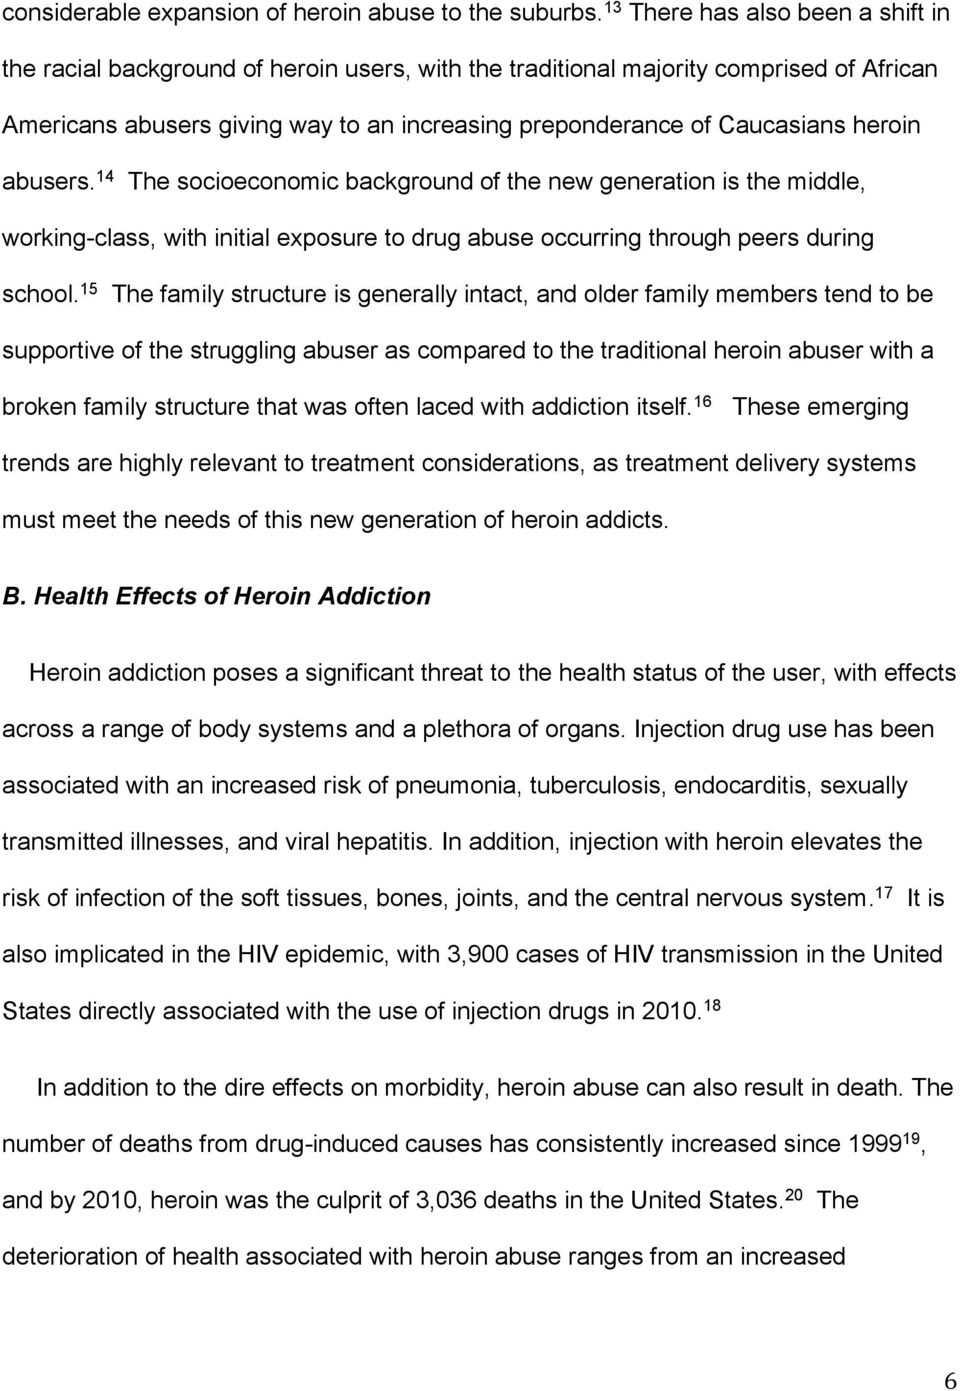 heroin abusers. 14 The socioeconomic background of the new generation is the middle, working-class, with initial exposure to drug abuse occurring through peers during school.